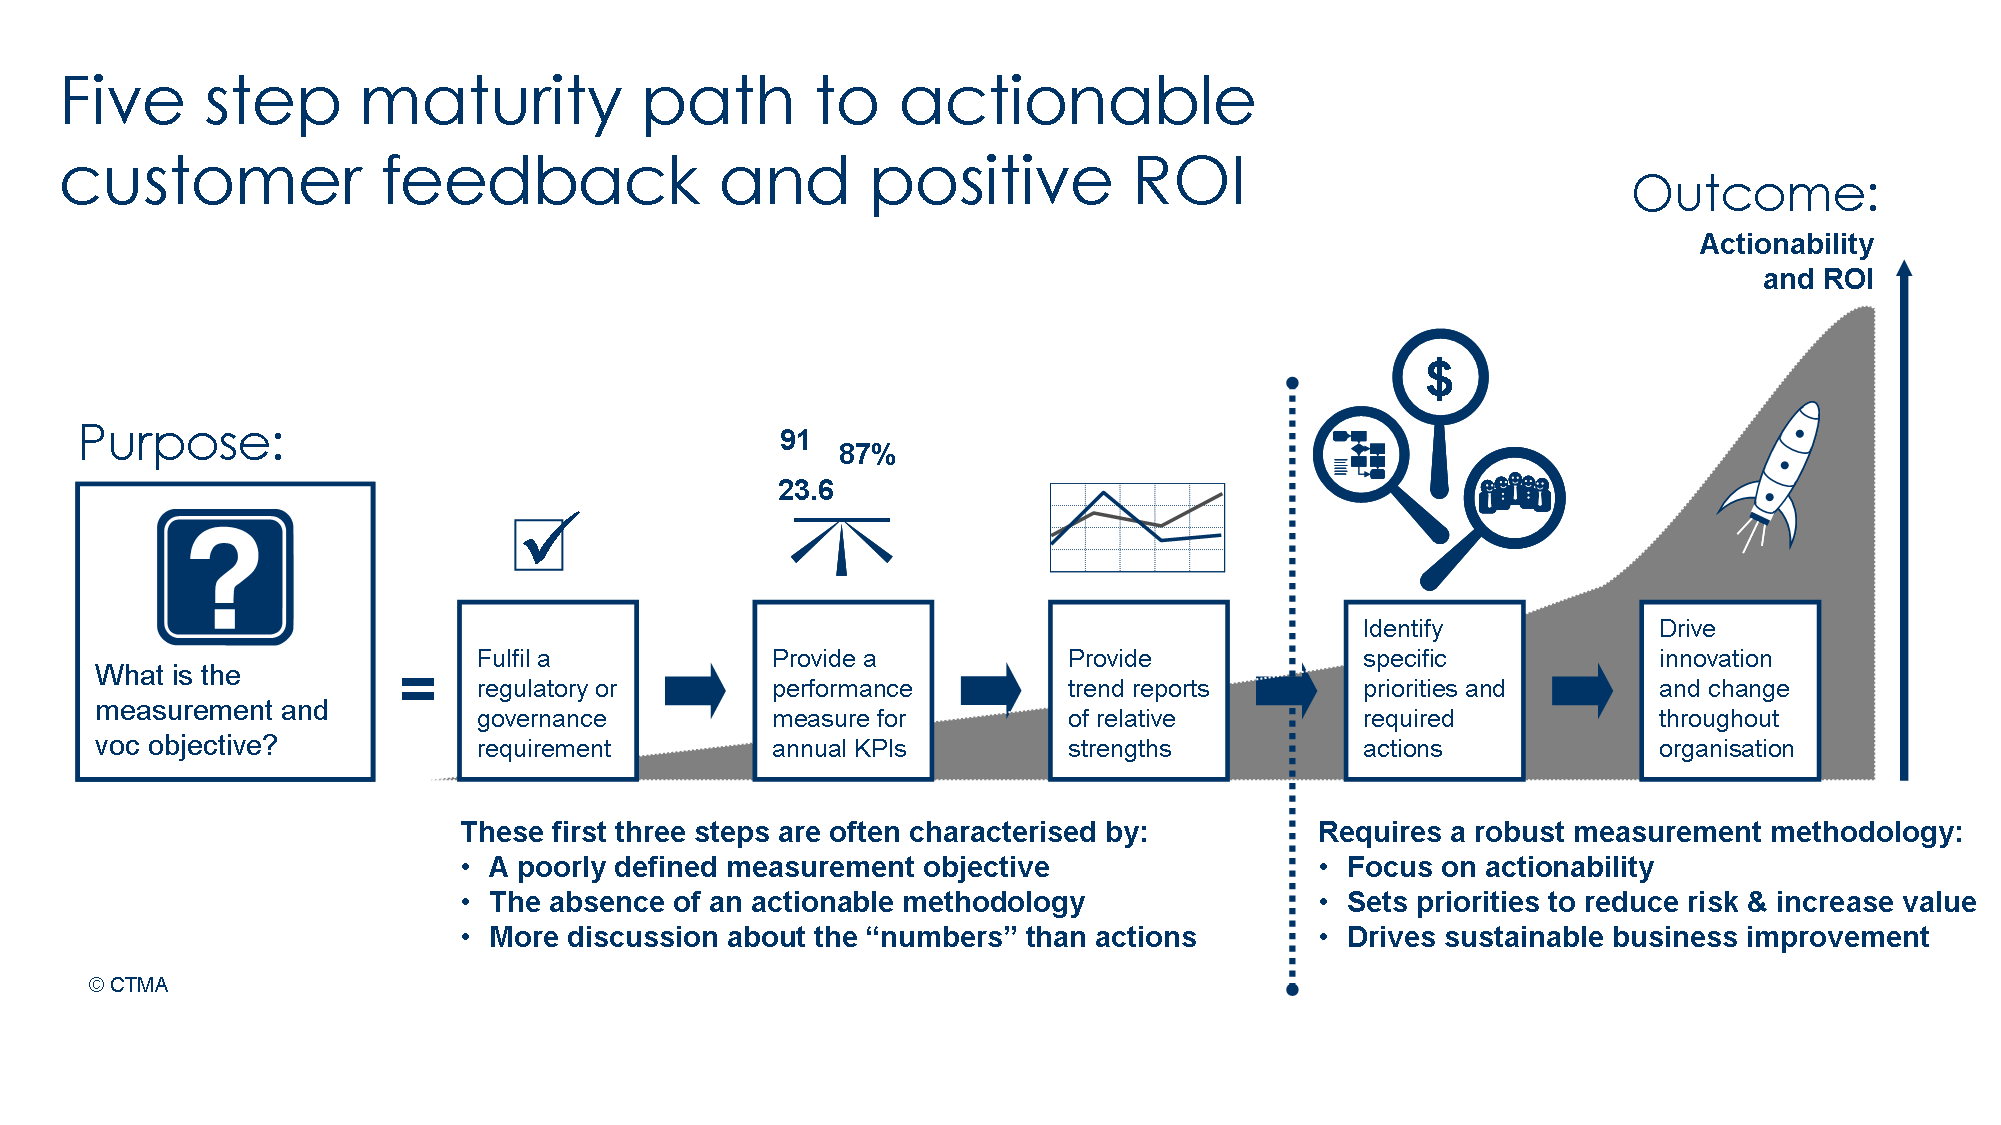 Five Step Maturity Path to Actionable Customer Feedback and Positive ROI